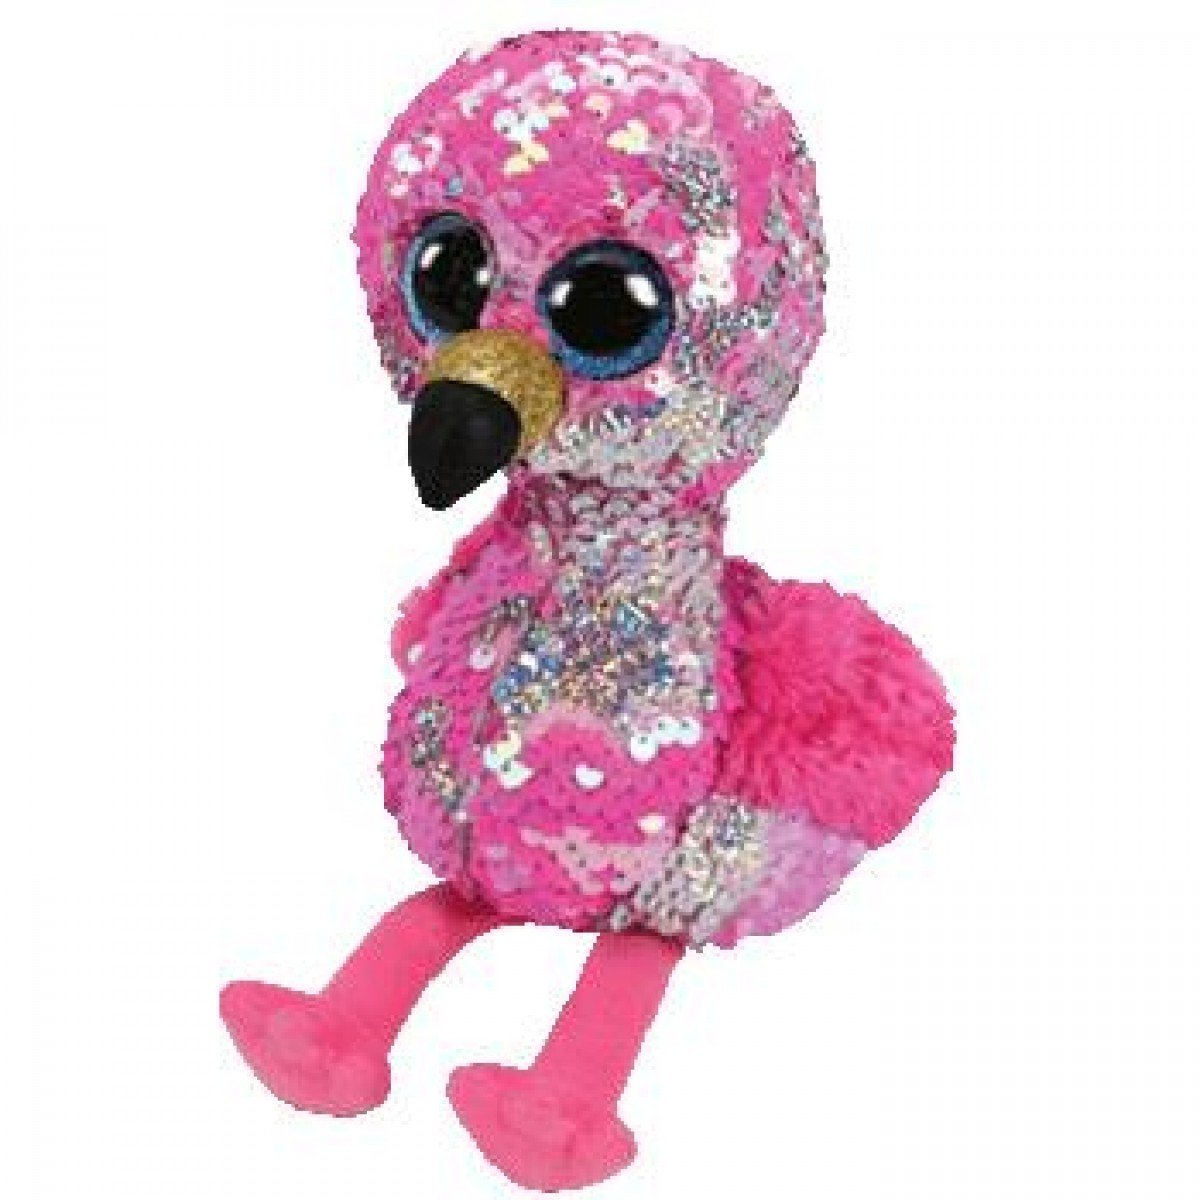 Beanie Boo Sequins - Medium - Pinky Flamingo-Yarrawonga Fun and Games